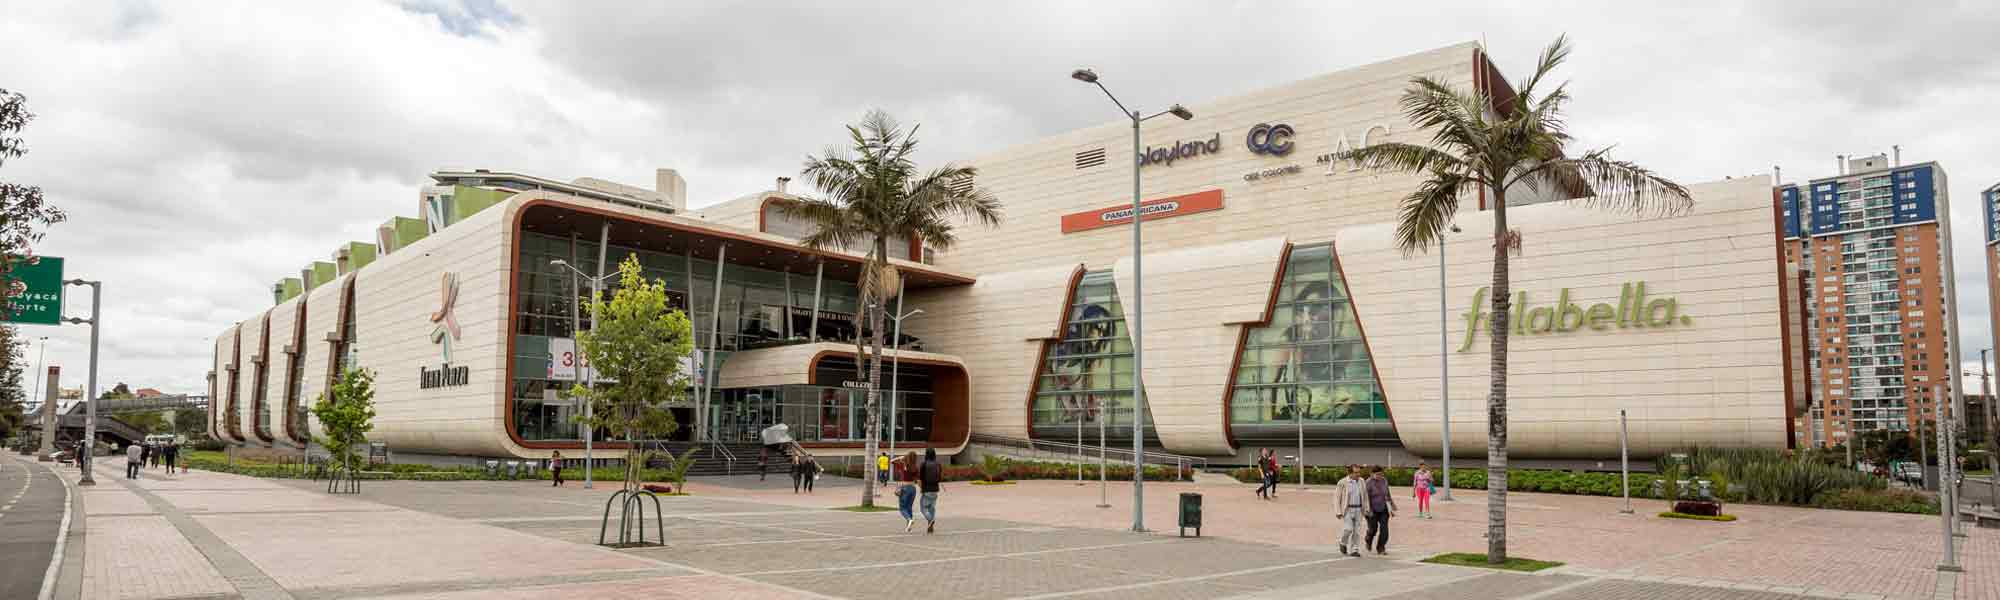 Titán Plaza Shopping Center is a commercial project located in Bogota